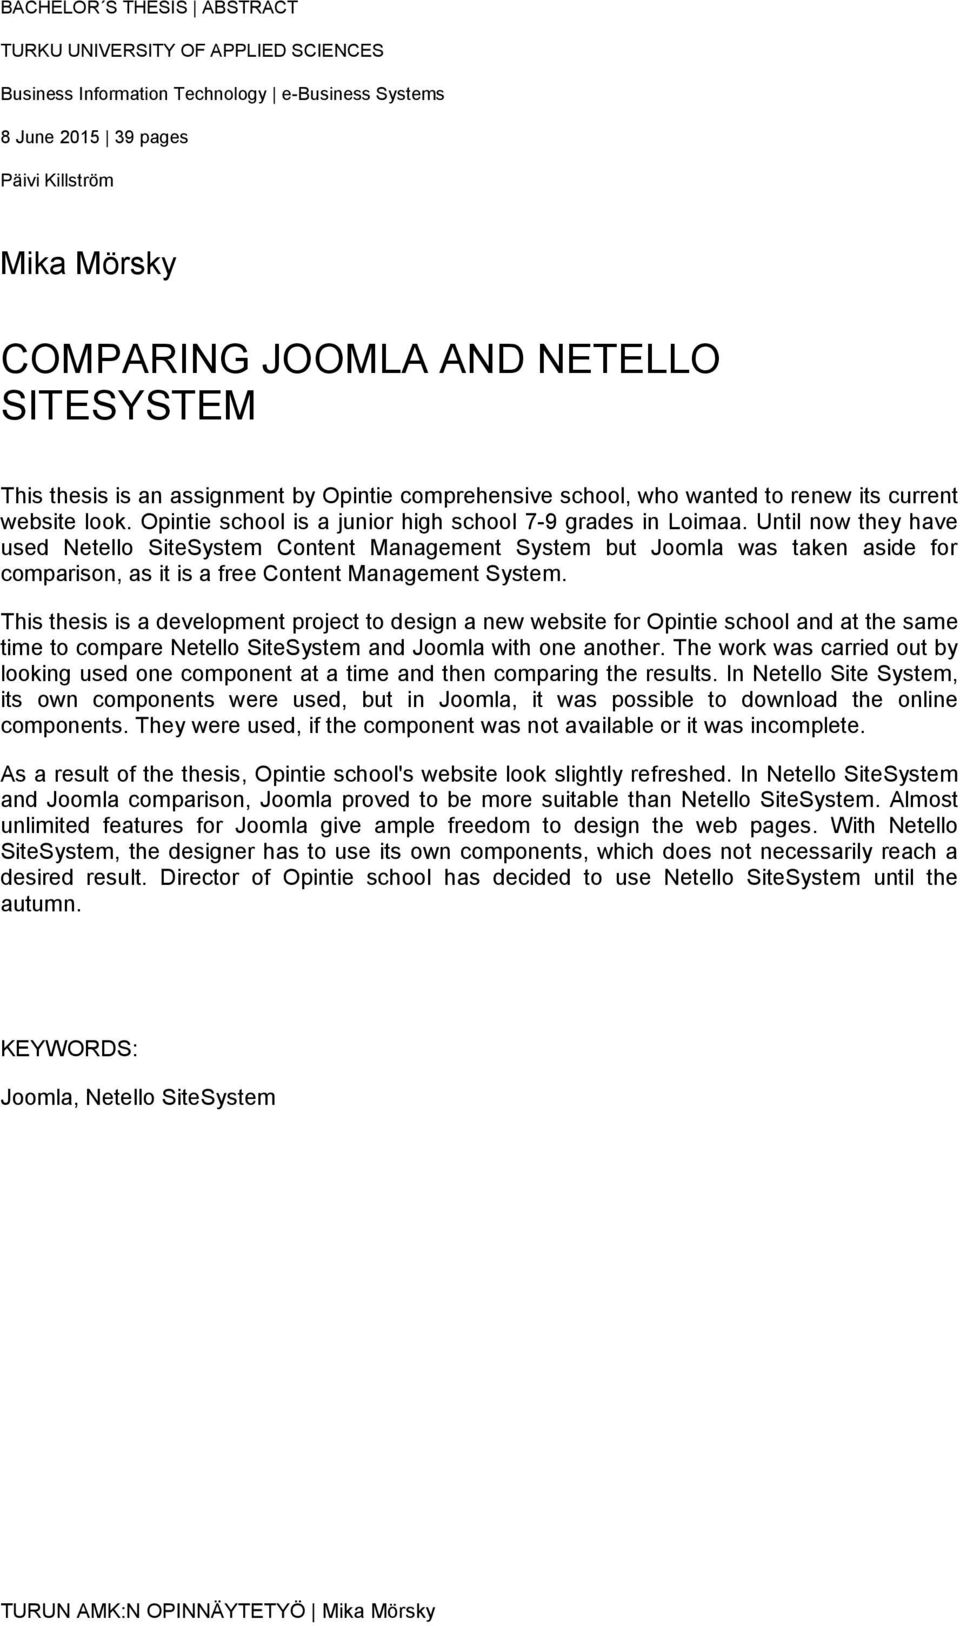 Until now they have used Netello SiteSystem Content Management System but Joomla was taken aside for comparison, as it is a free Content Management System.